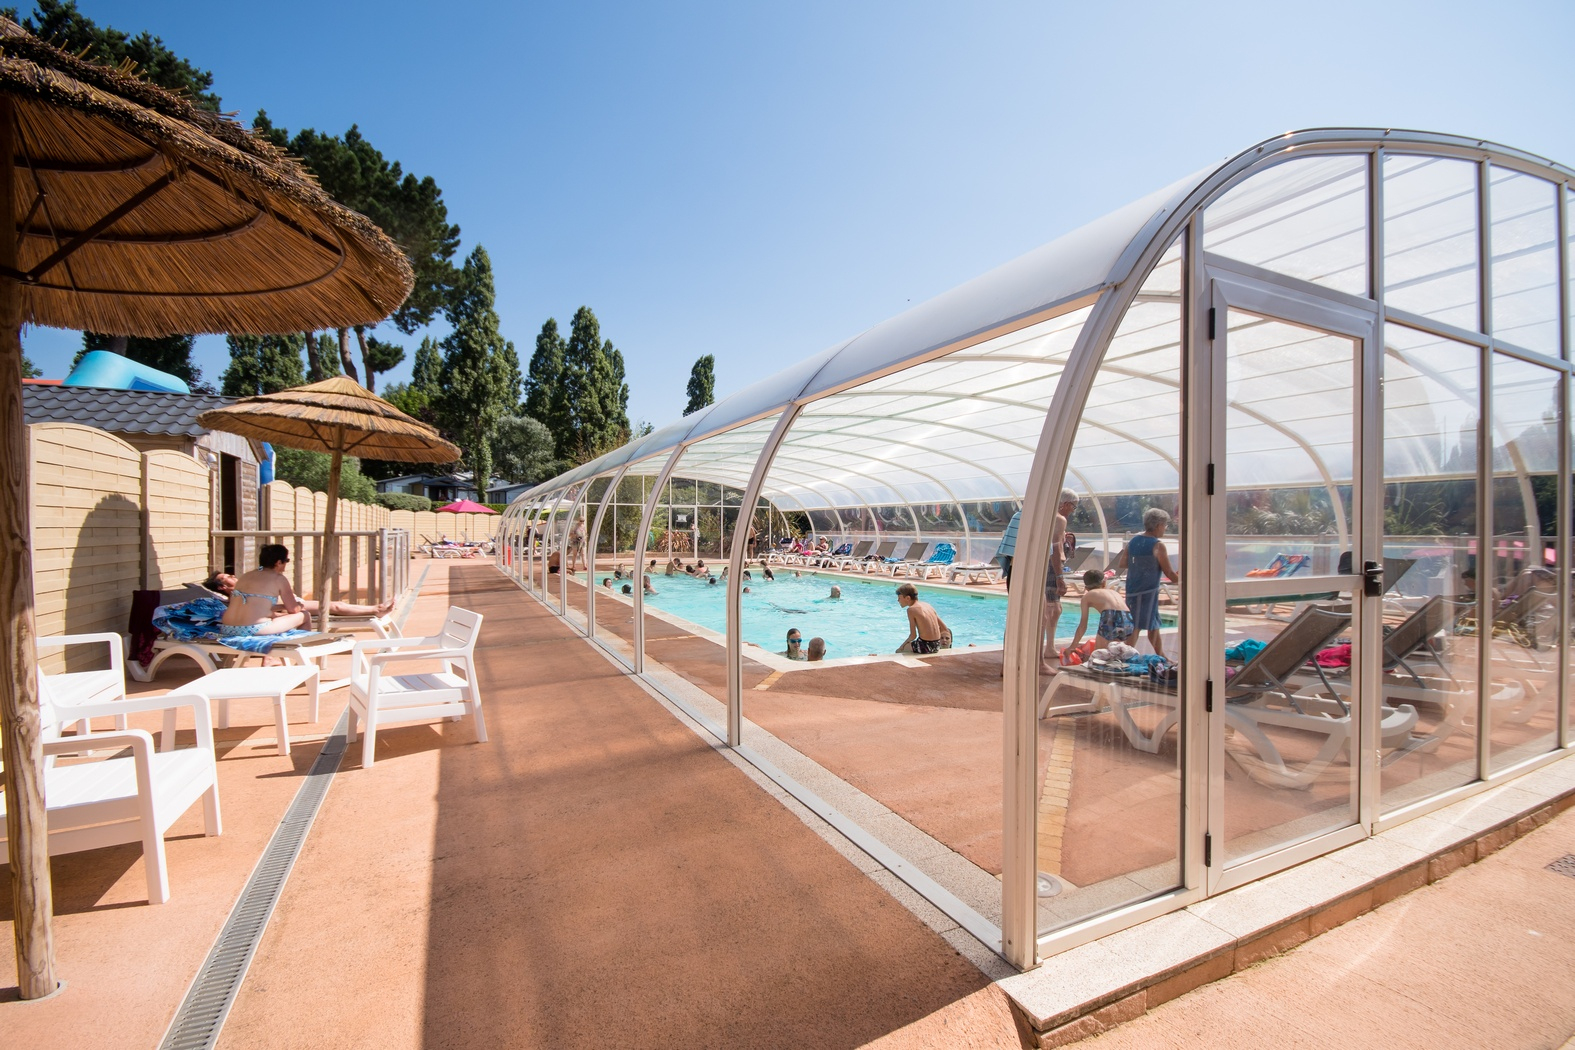 All-Year Heated, Indoor Pool At Le Panoramic Campsite ... pour Piscine Binic